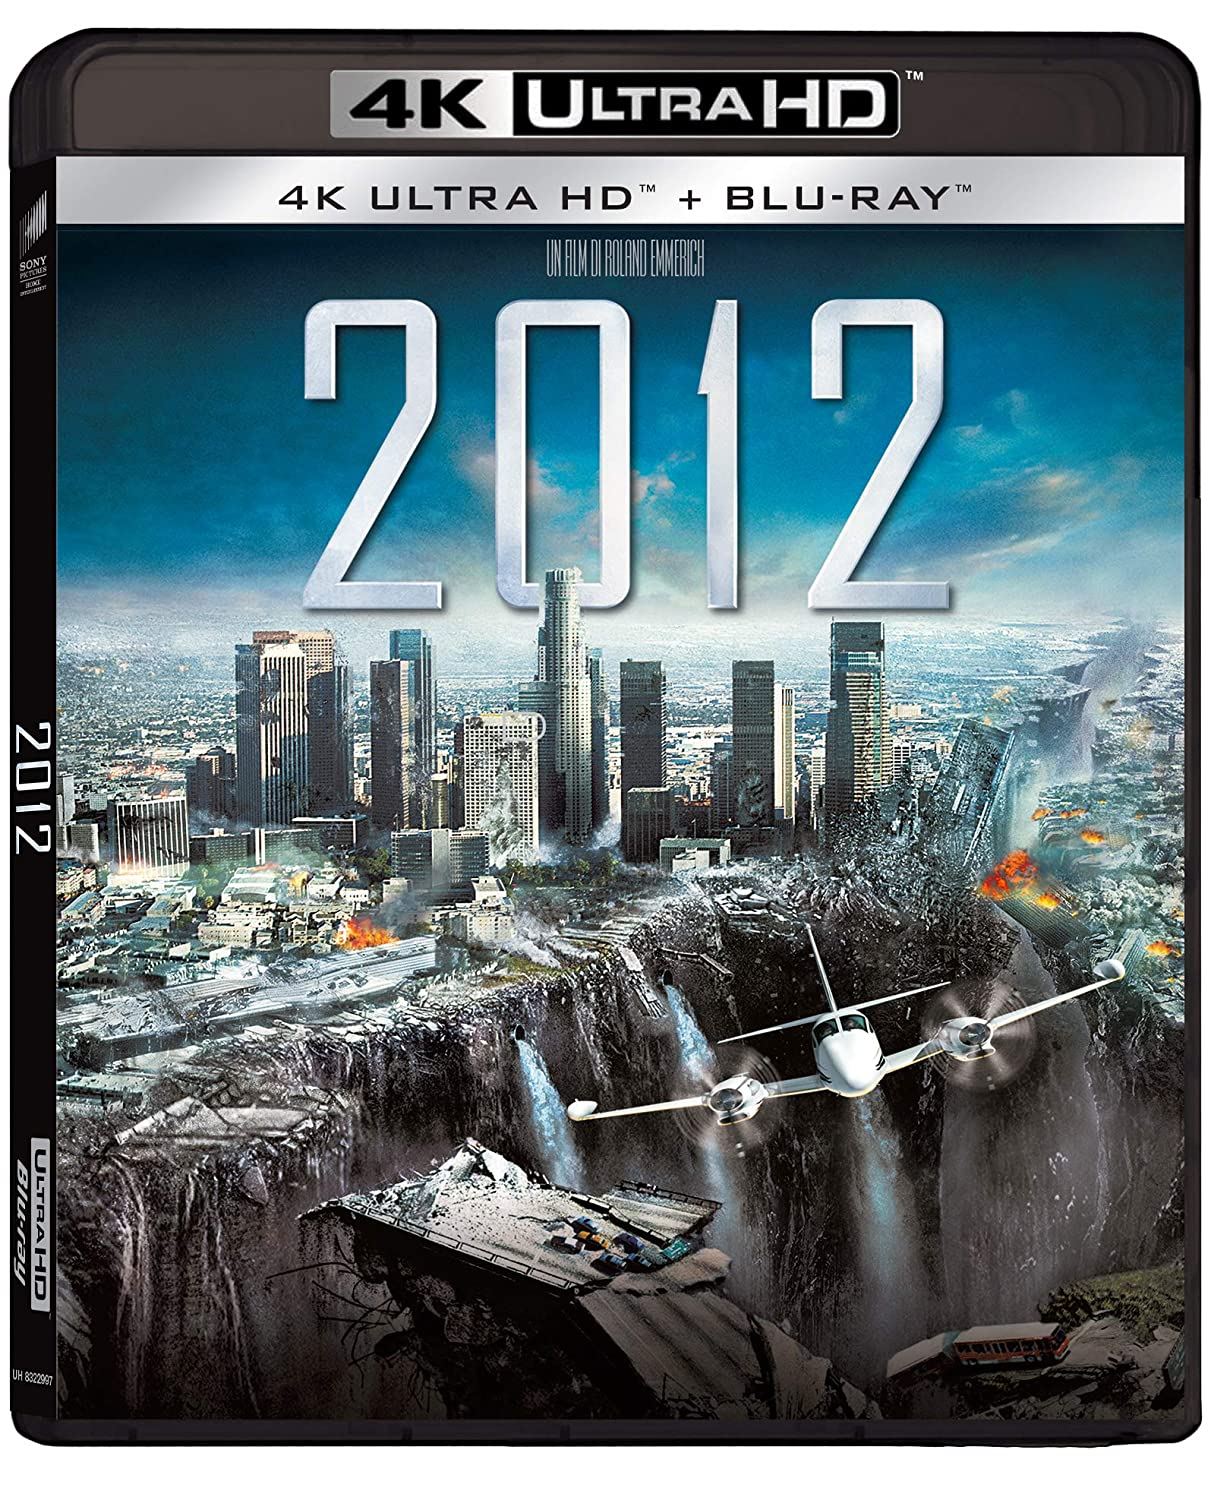 2012 (4K ULTRA HD+BLU-RAY)